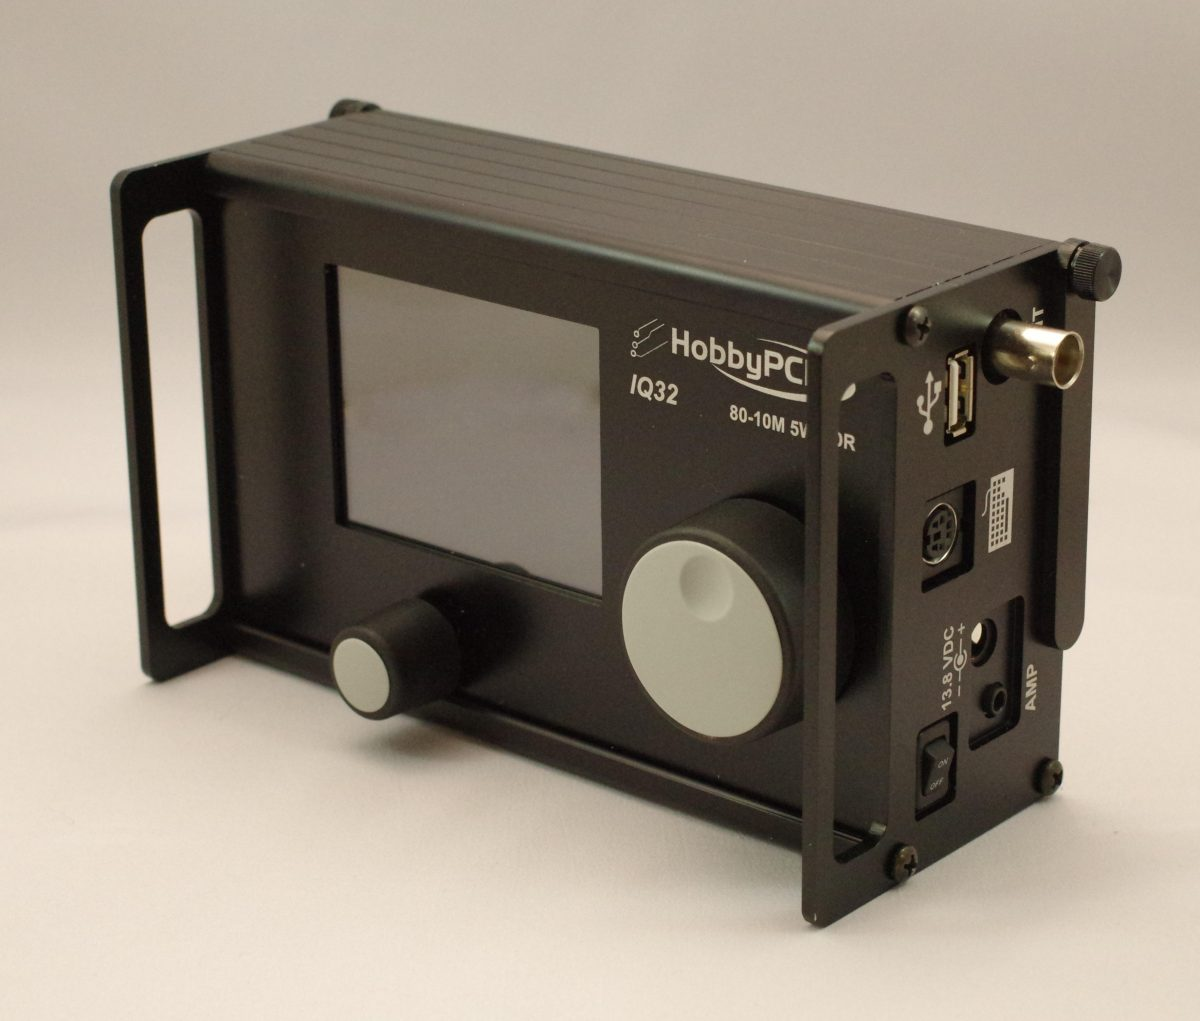 The HobbyPCB IQ-32: A general coverage portable QRP